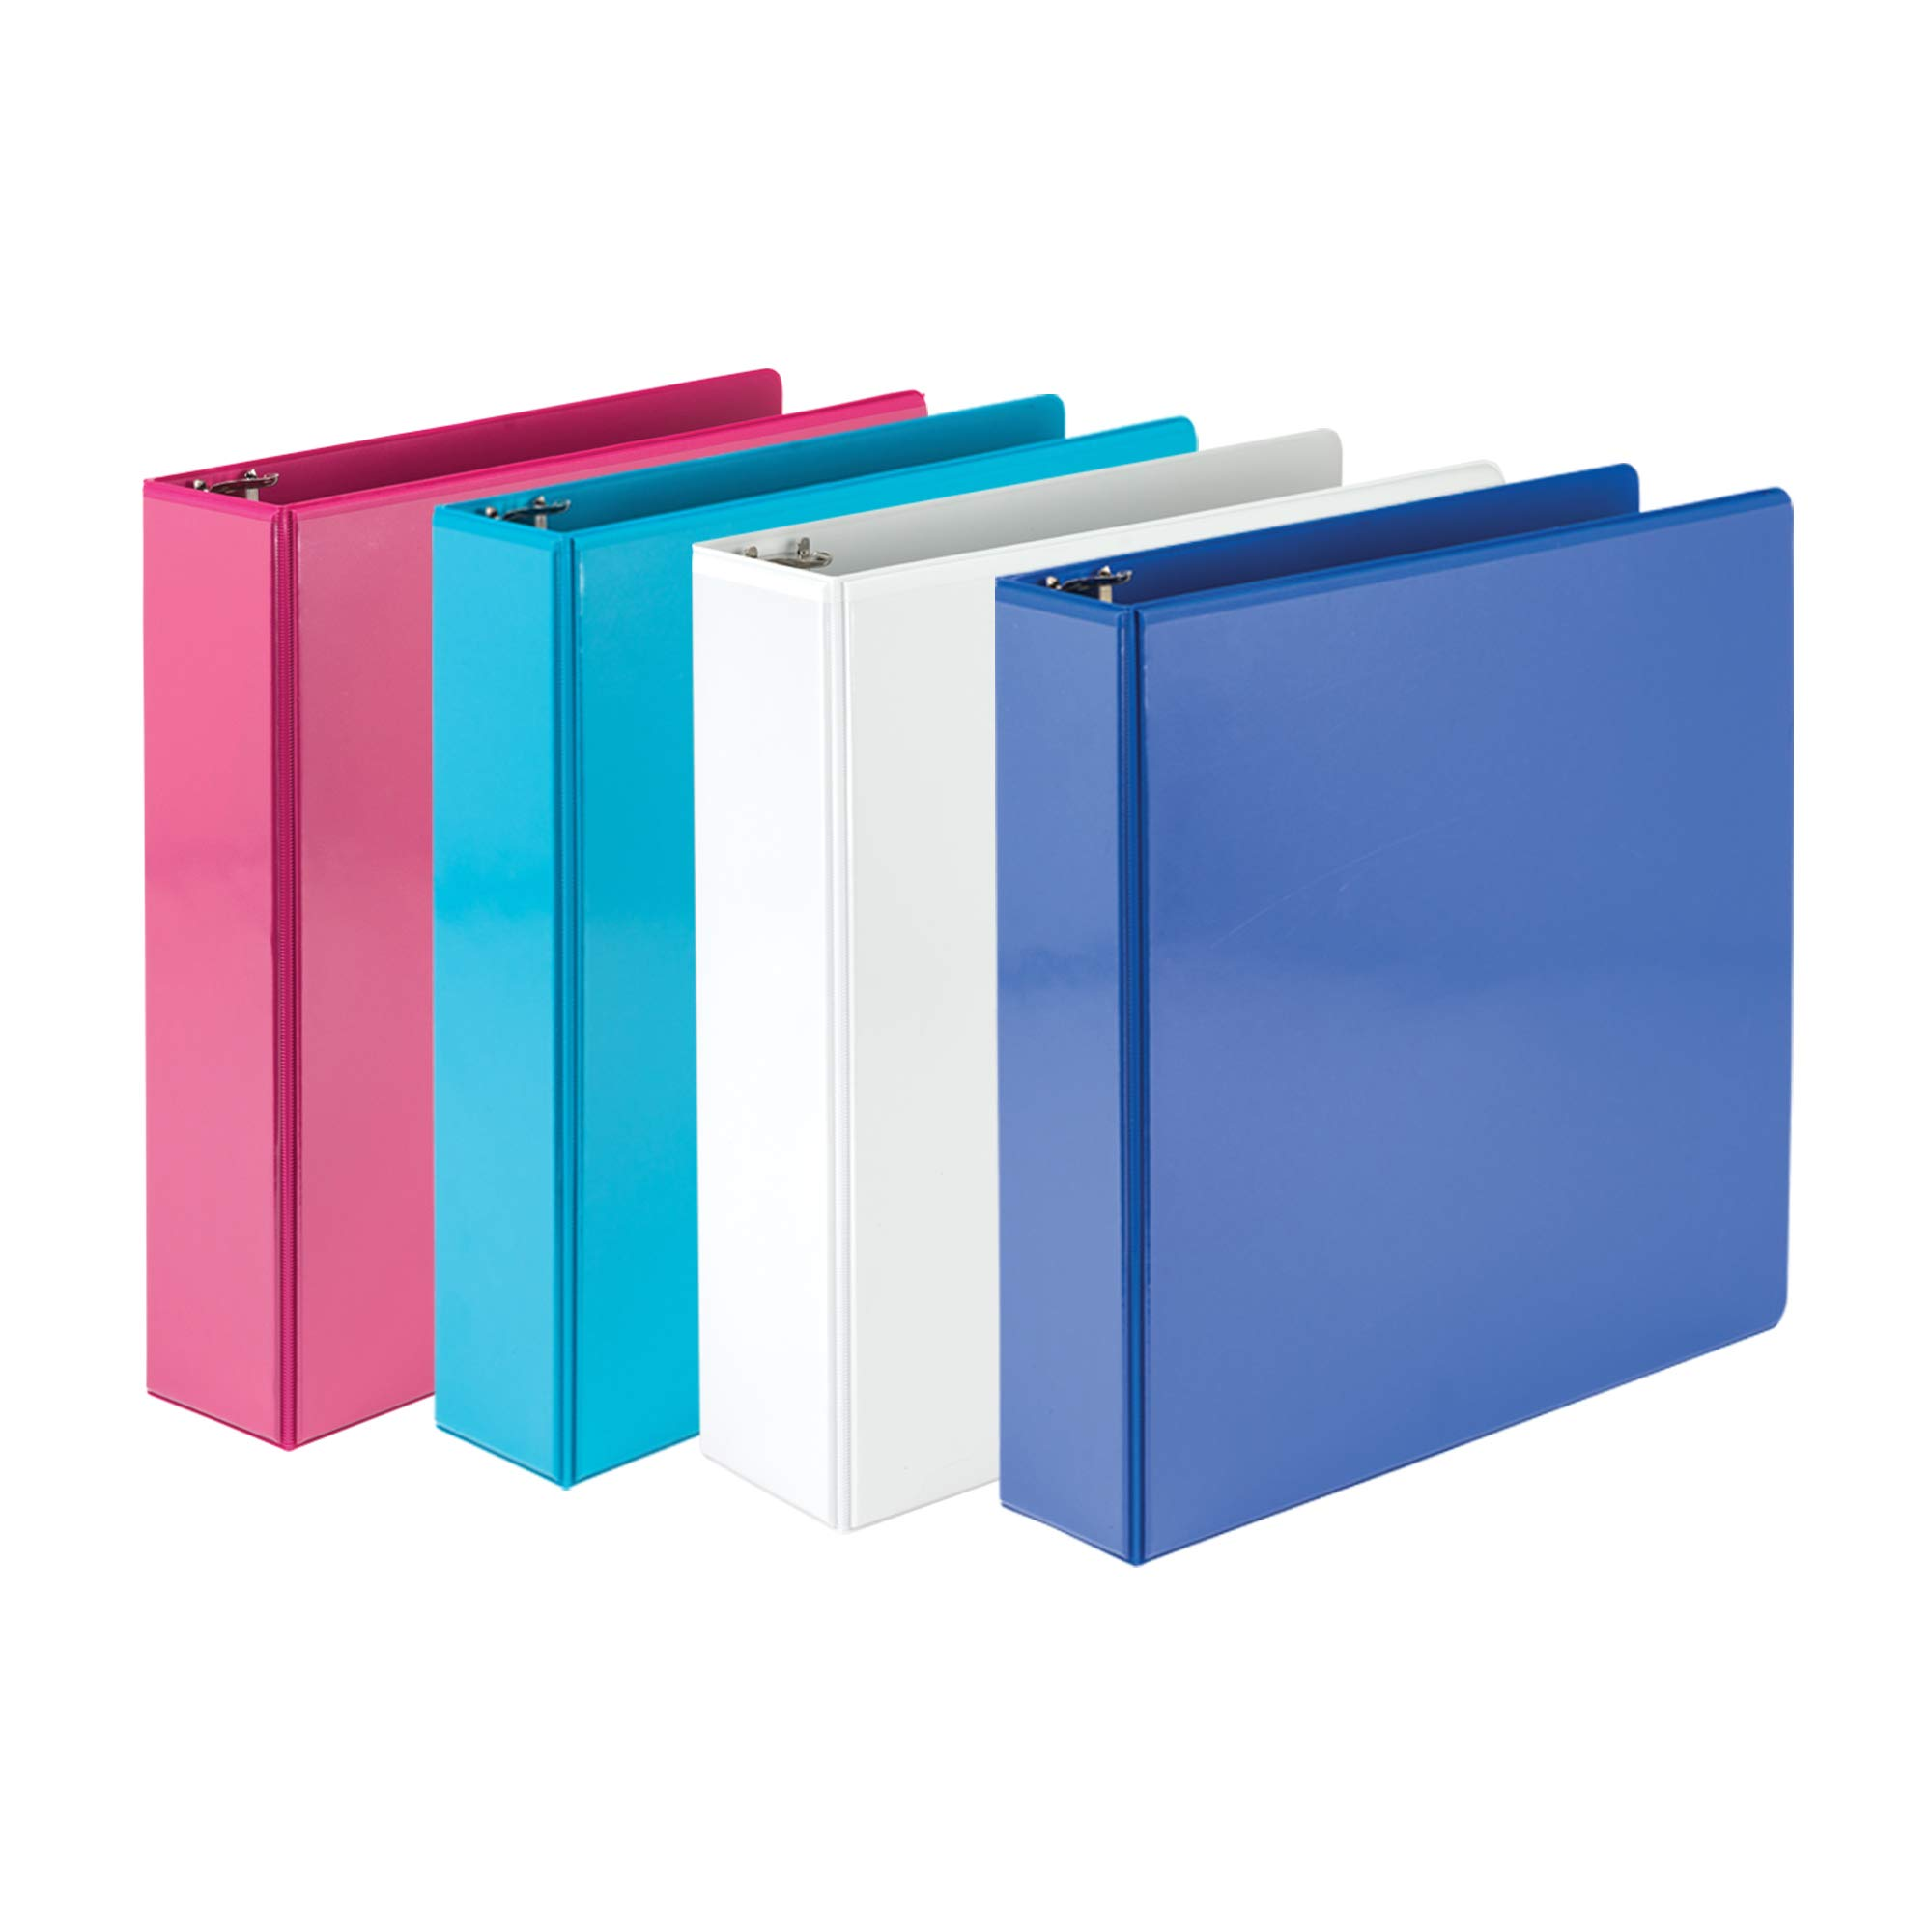 Samsill 2 Inch Round Ring Binders/Customizable Clear View Binder/Bulk Binder 4 Pack/ 3 Ring Binder / 2 Inch Binder/Fashion Color Assortment by Samsill